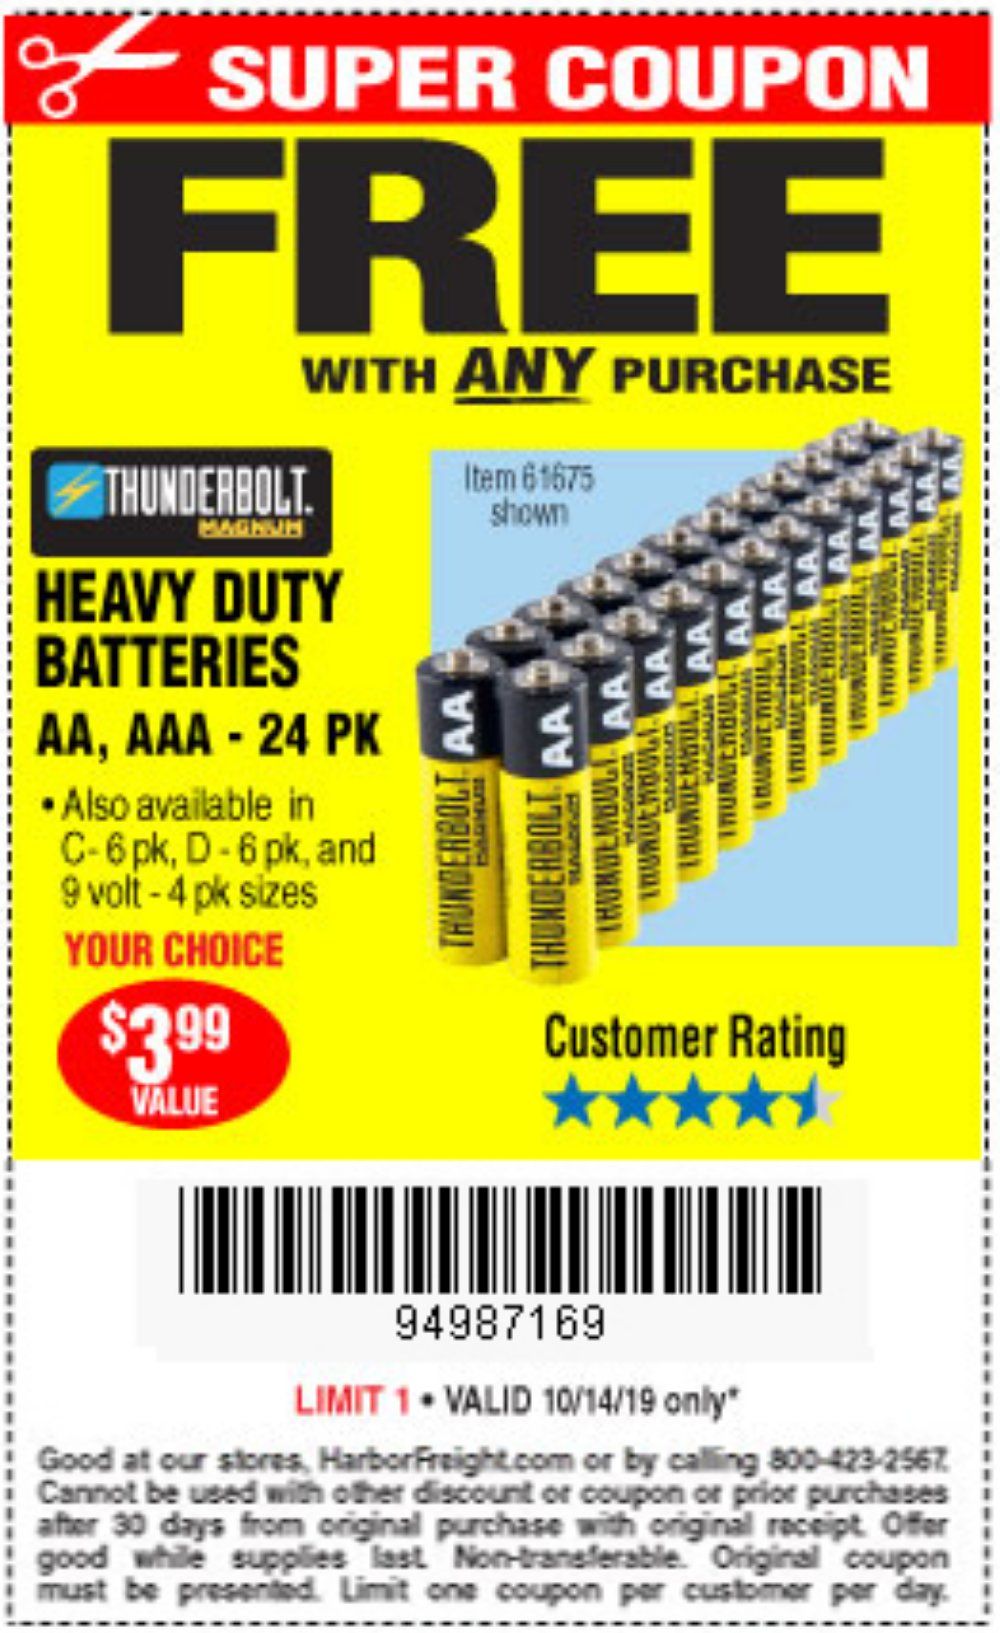 Harbor Freight Coupon, HF Coupons - FREE - 24 Pack Heavy Duty Batteries